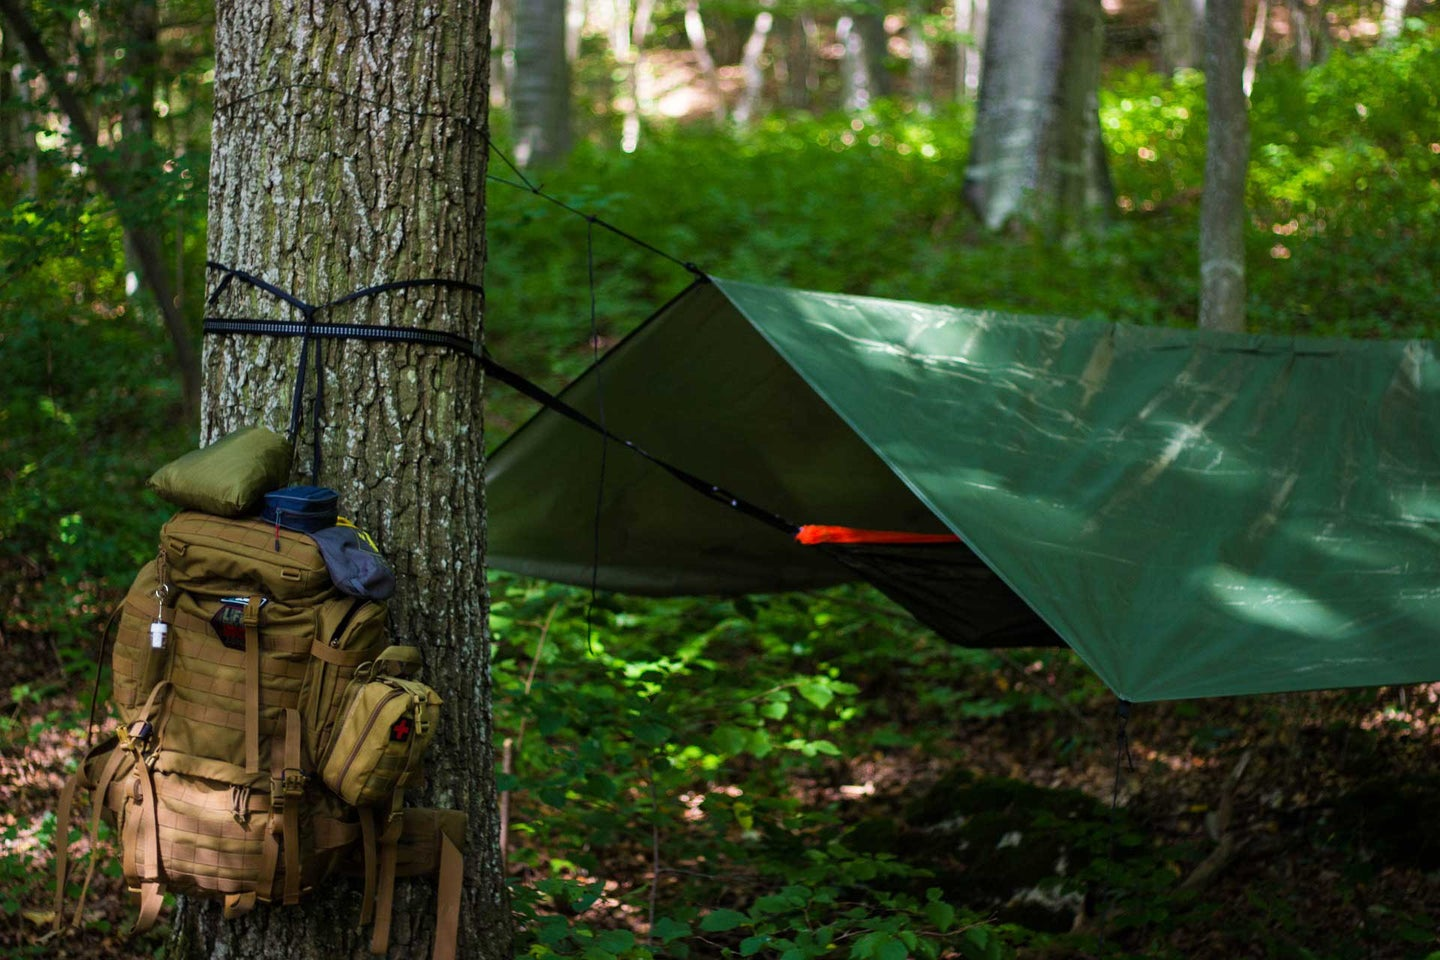 Tarp covering a campsite in the woods